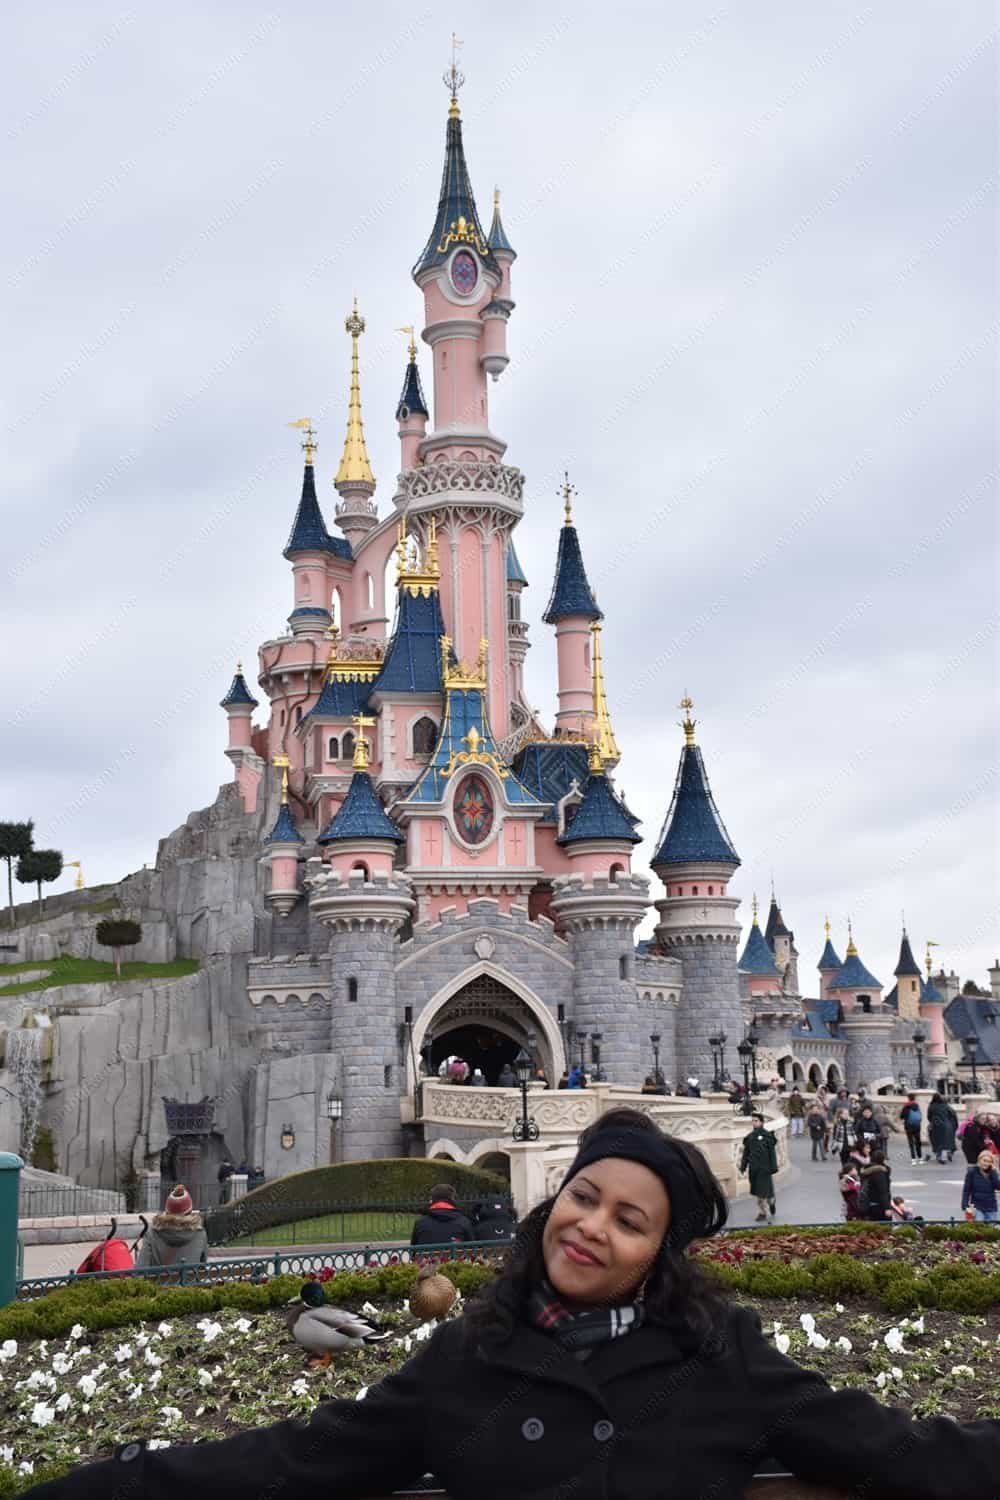 The Sleeping Beauty Castle